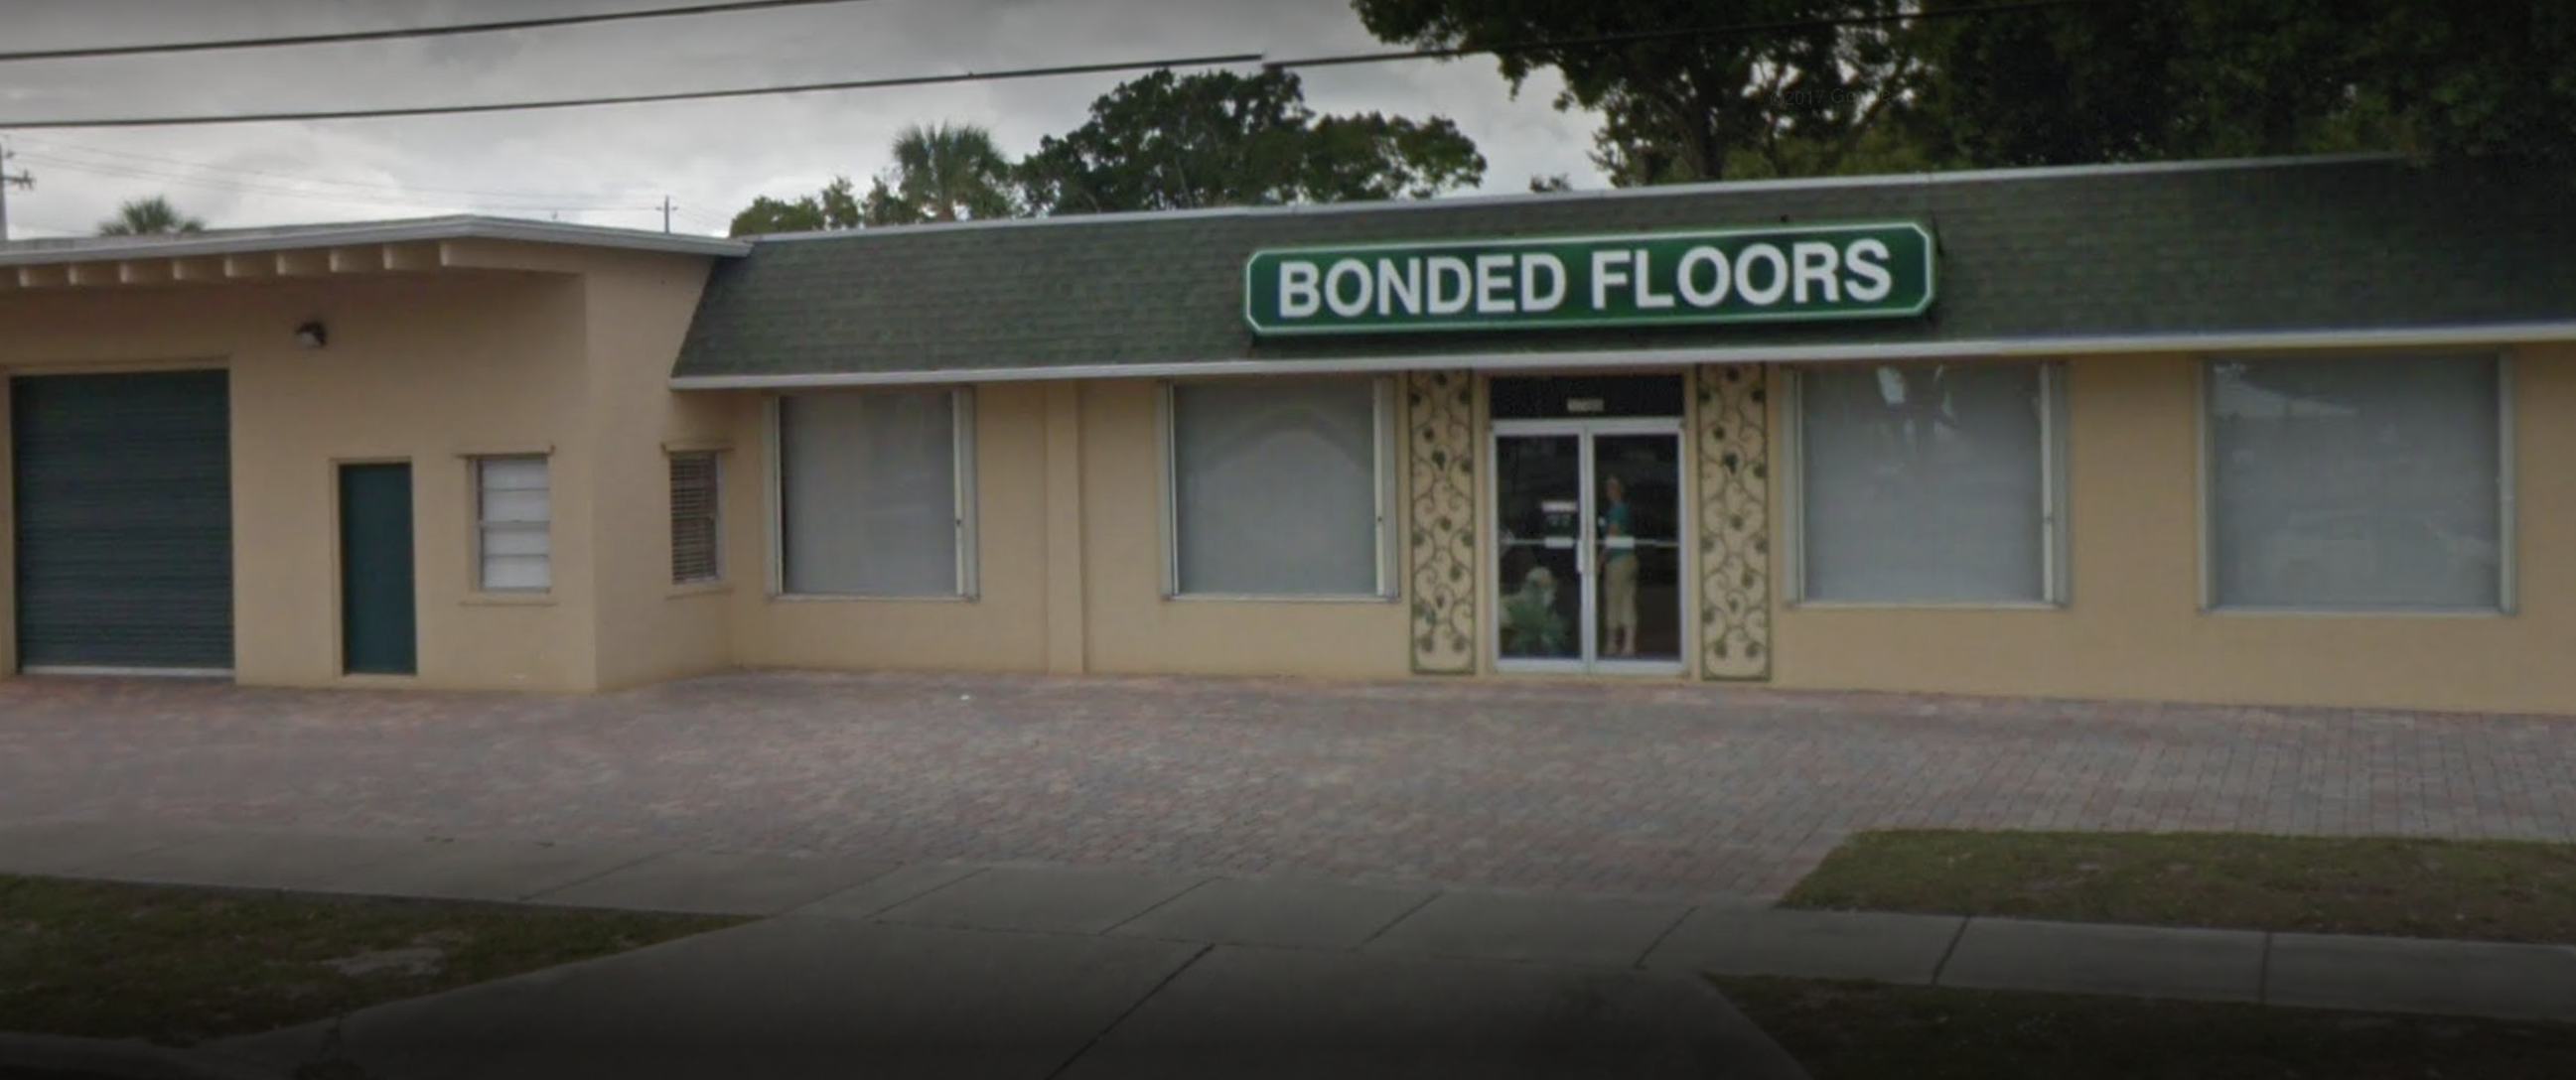 Bonded Floors Of Vero Beach - 1755 10th Ave, Vero Beach, FL 32960